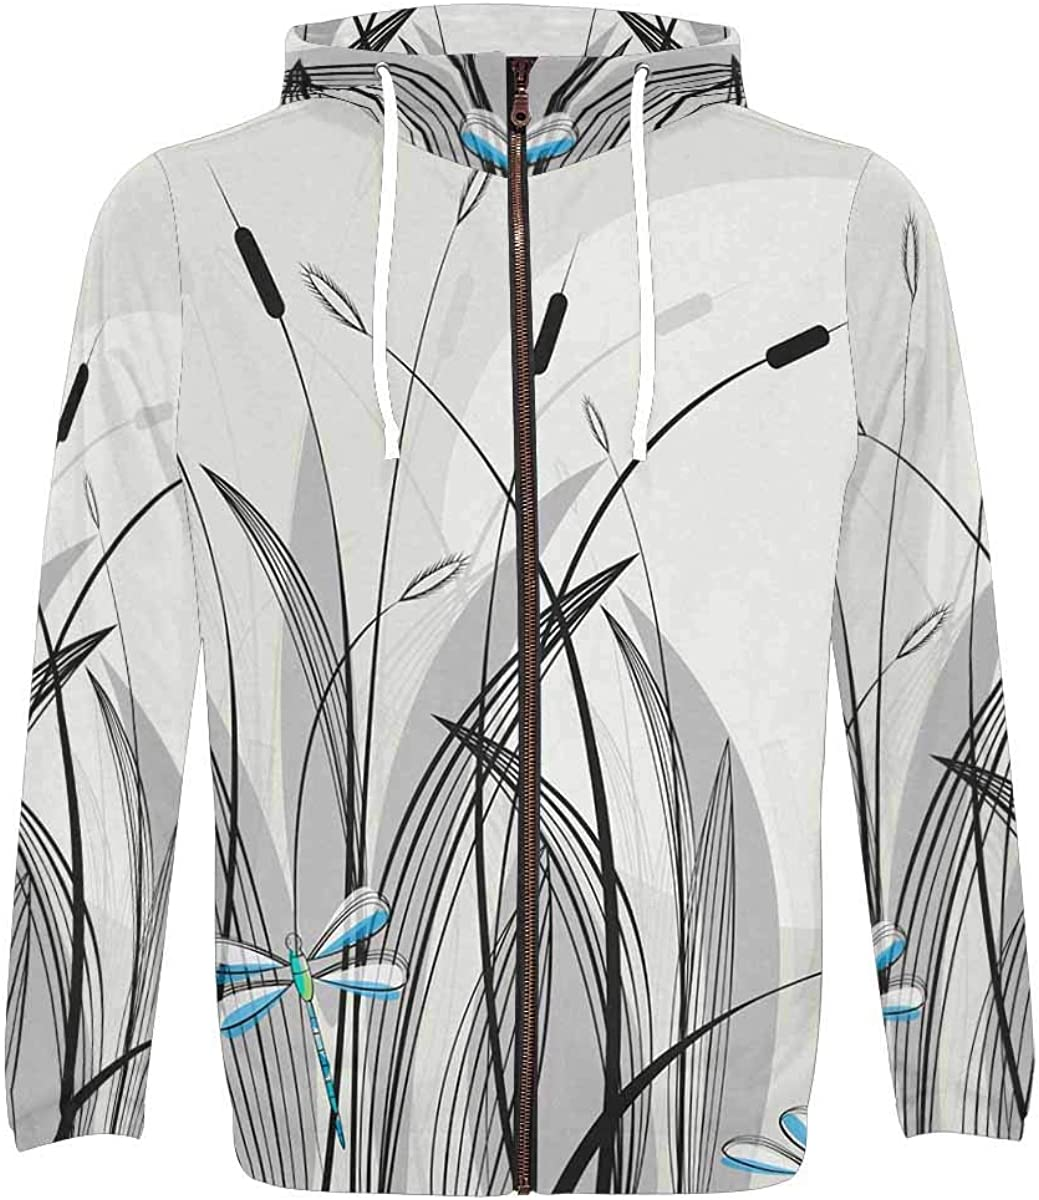 InterestPrint Men's Lightweight Full Zip Hoodie with Sleeve Long Max 59% Super sale period limited OFF